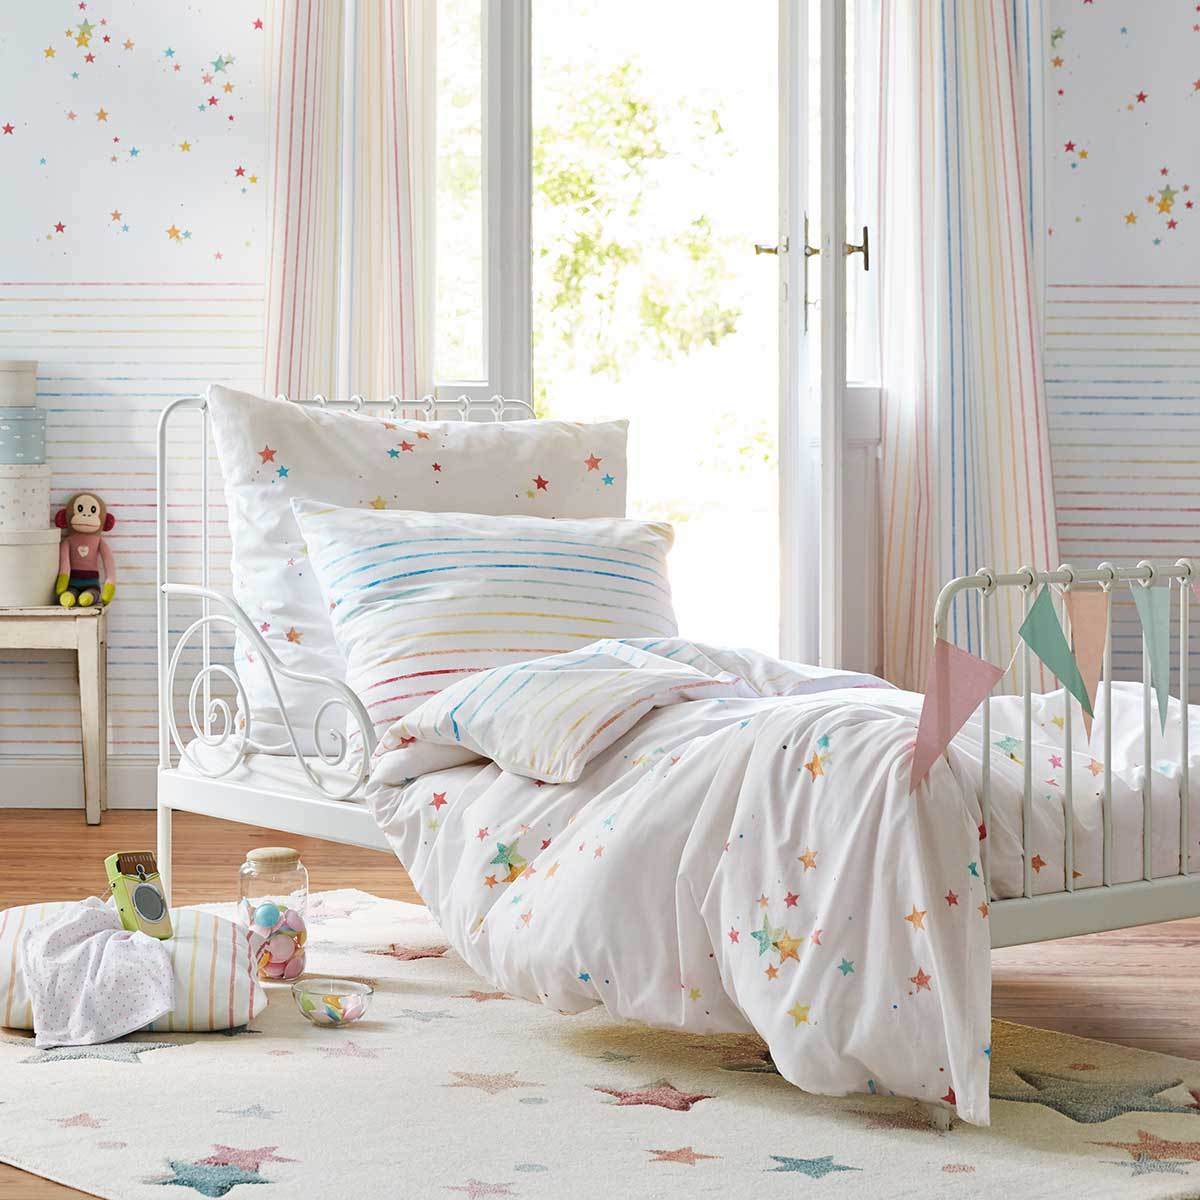 esprit kinderbettw sche happy stars g nstig online kaufen bei bettwaren shop. Black Bedroom Furniture Sets. Home Design Ideas